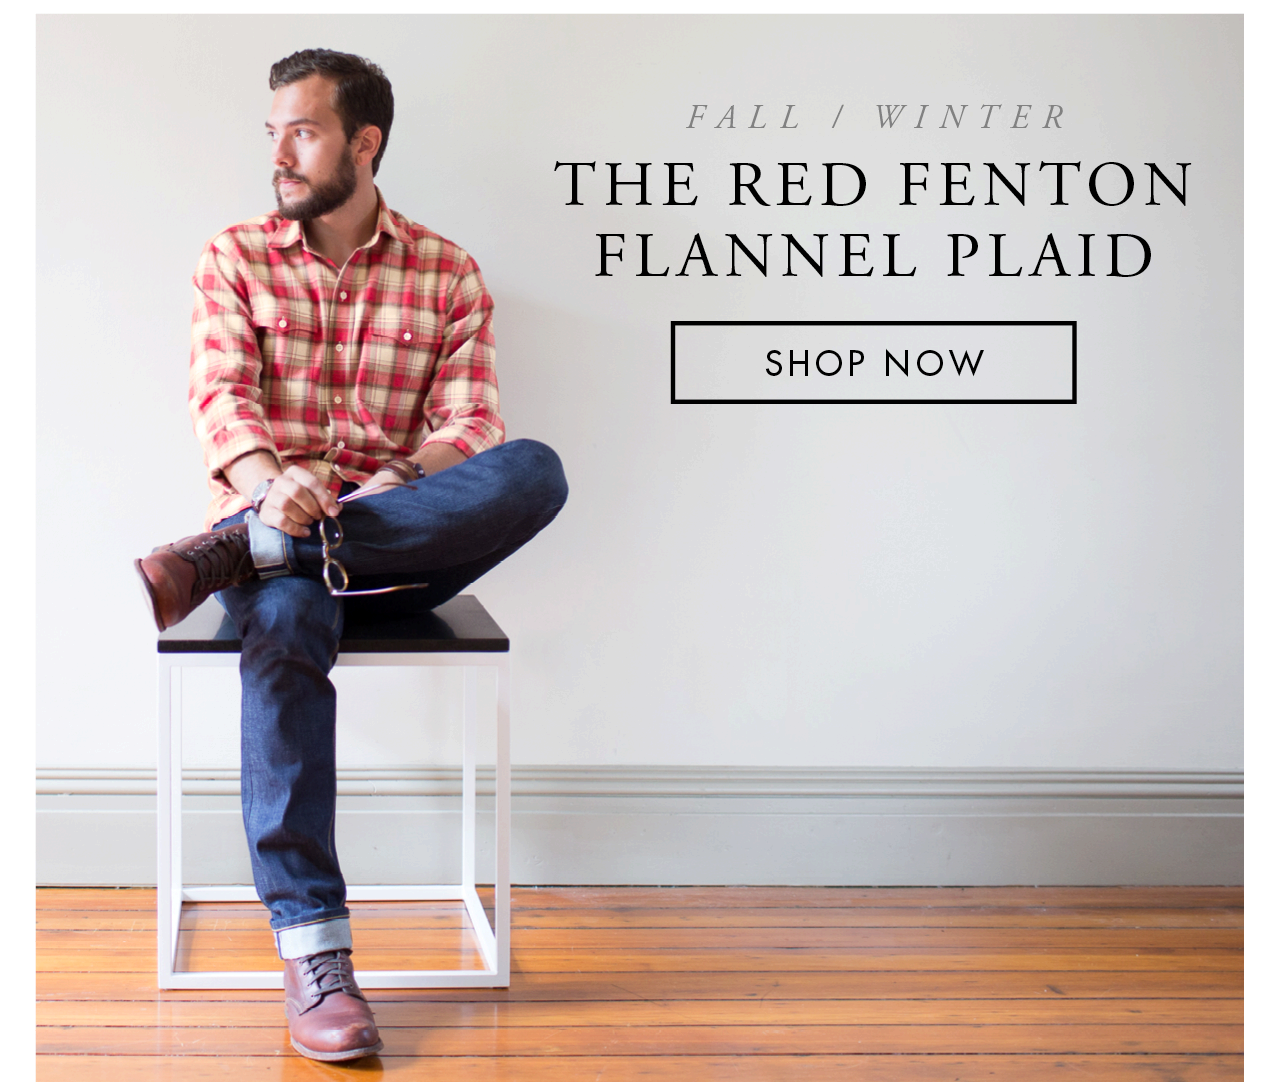 The Red Fenton Flannel Plaid